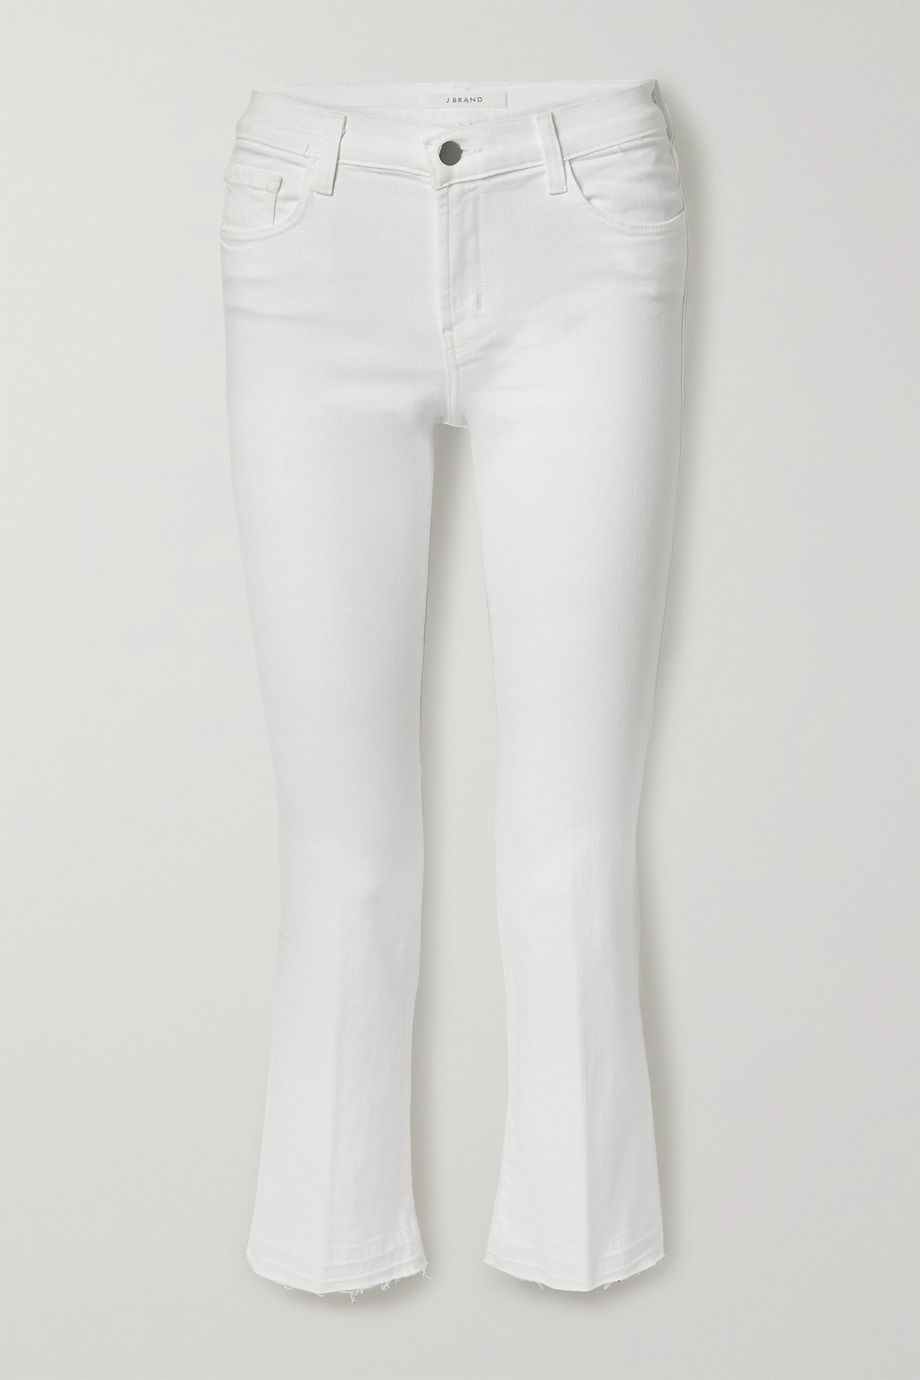 J Brand Selena frayed mid-rise bootcut jeans